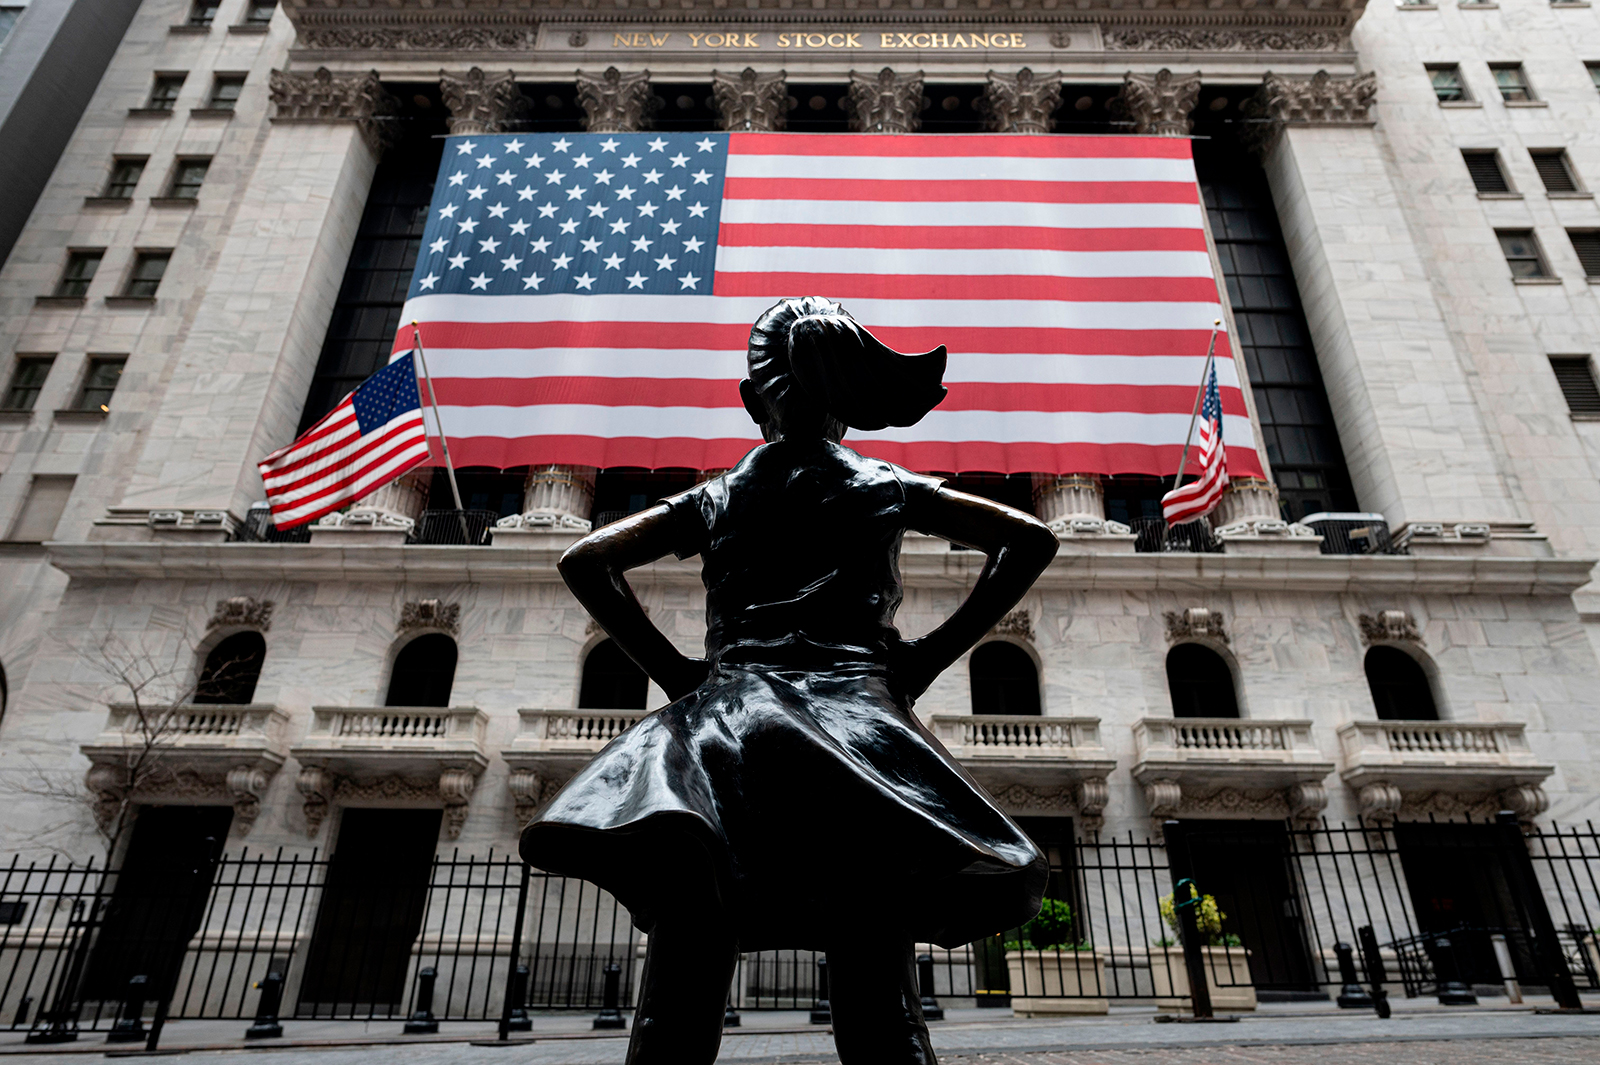 The New York Stock Exchange is pictured on April 20, 2020 at Wall Street in New York City.